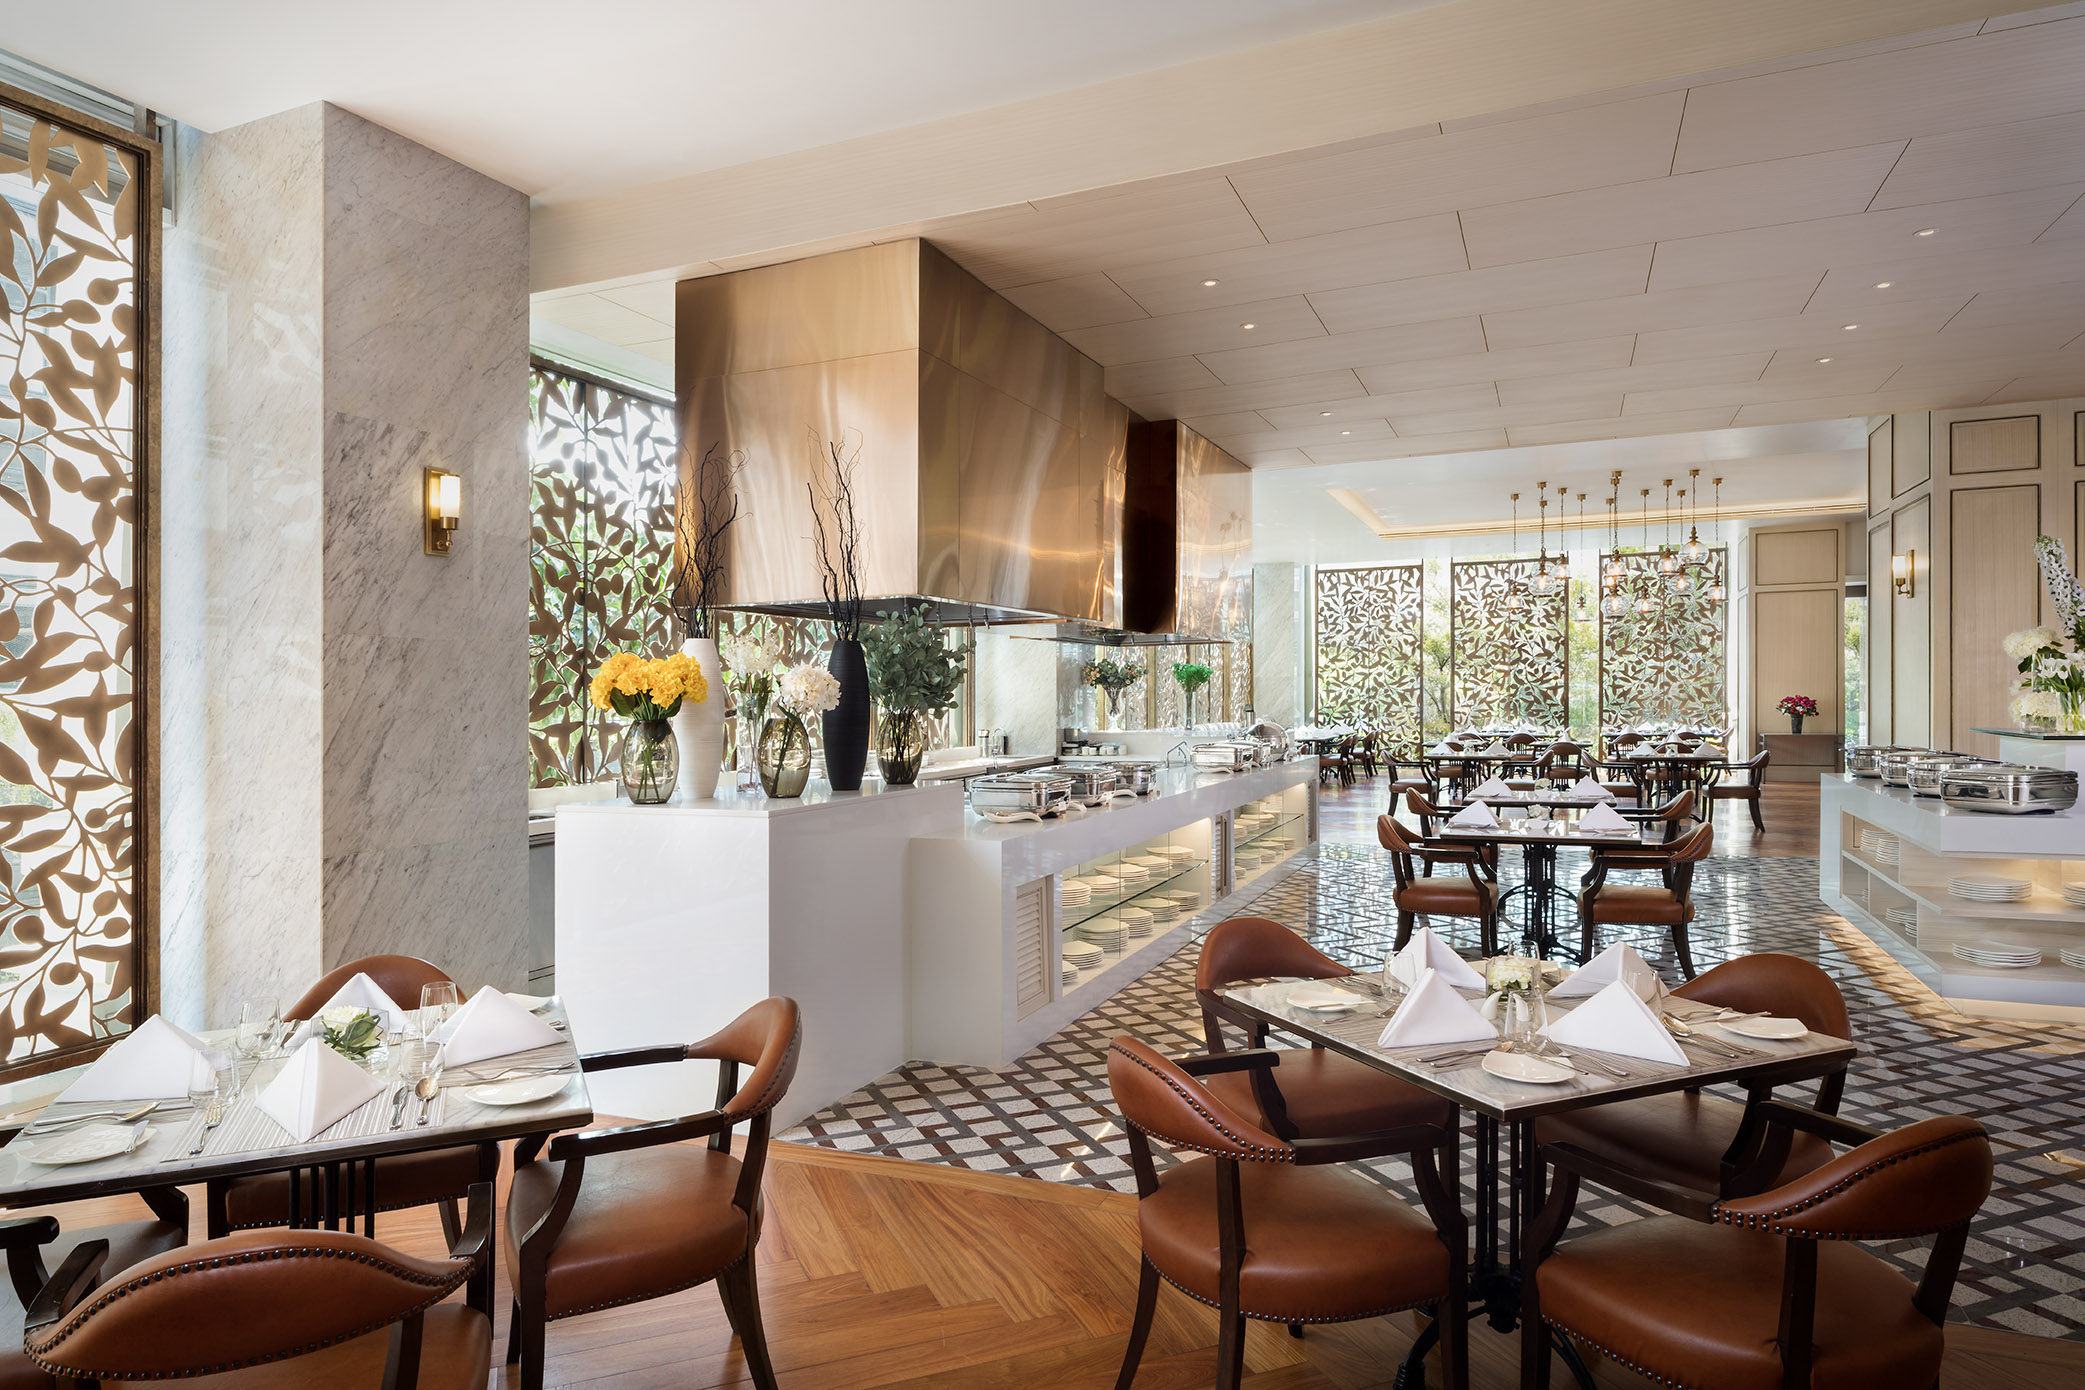 Siam Brasserie is the main restaurant at the Lancaster Bangkok